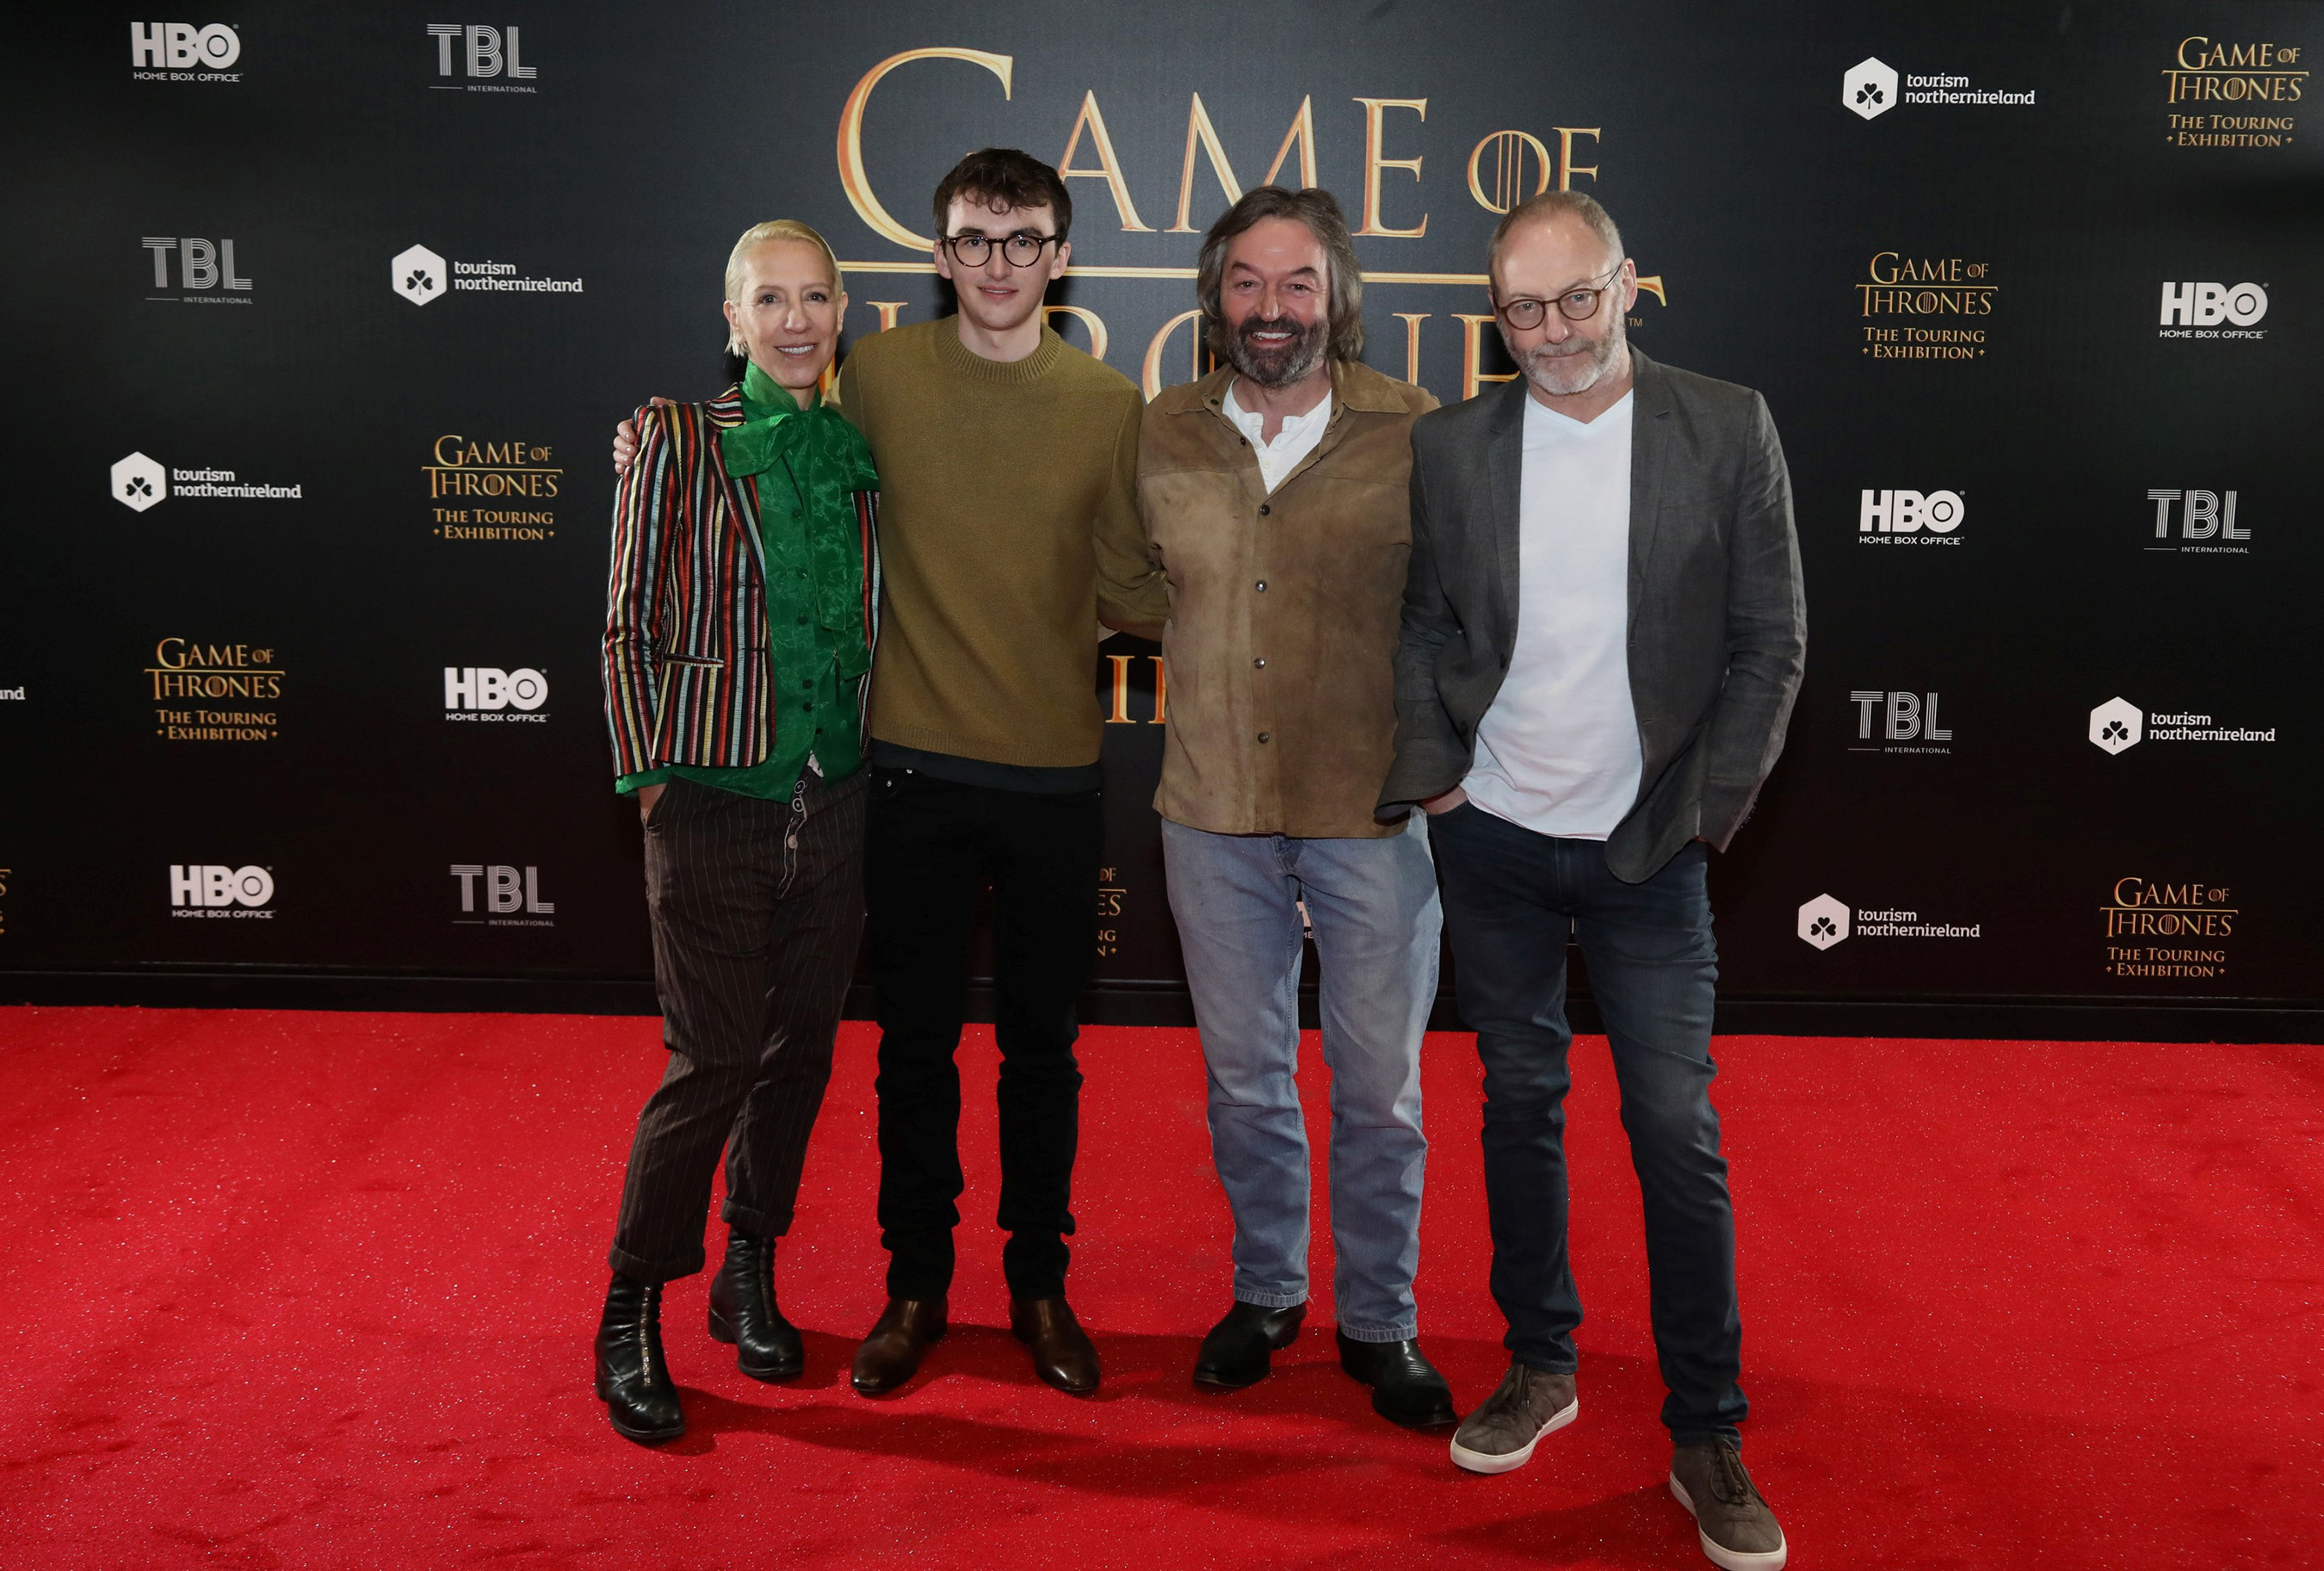 Michele Clapton, Isaac Hempstead Wright, Ian Beattie, Liam Cunningham at GAME OF THRONES™: The Touring Exhibition at TEC in Belfast, Northern Ireland